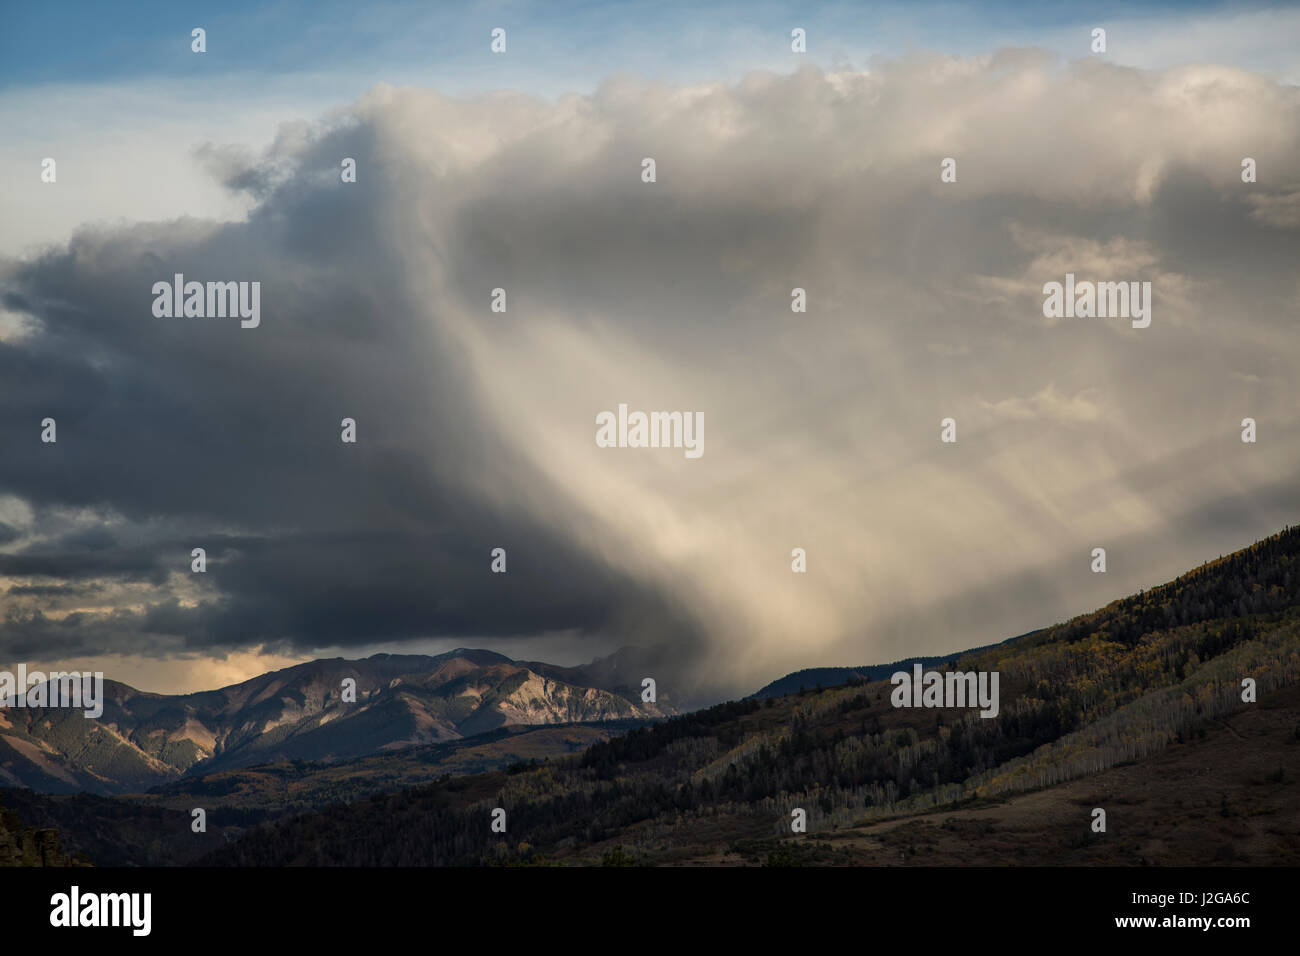 USA, Colorado, Sneffels Range. Wave-shaped storm over mountain. Credit as: Don Grall / Jaynes Gallery / DanitaDelimont.com - Stock Image